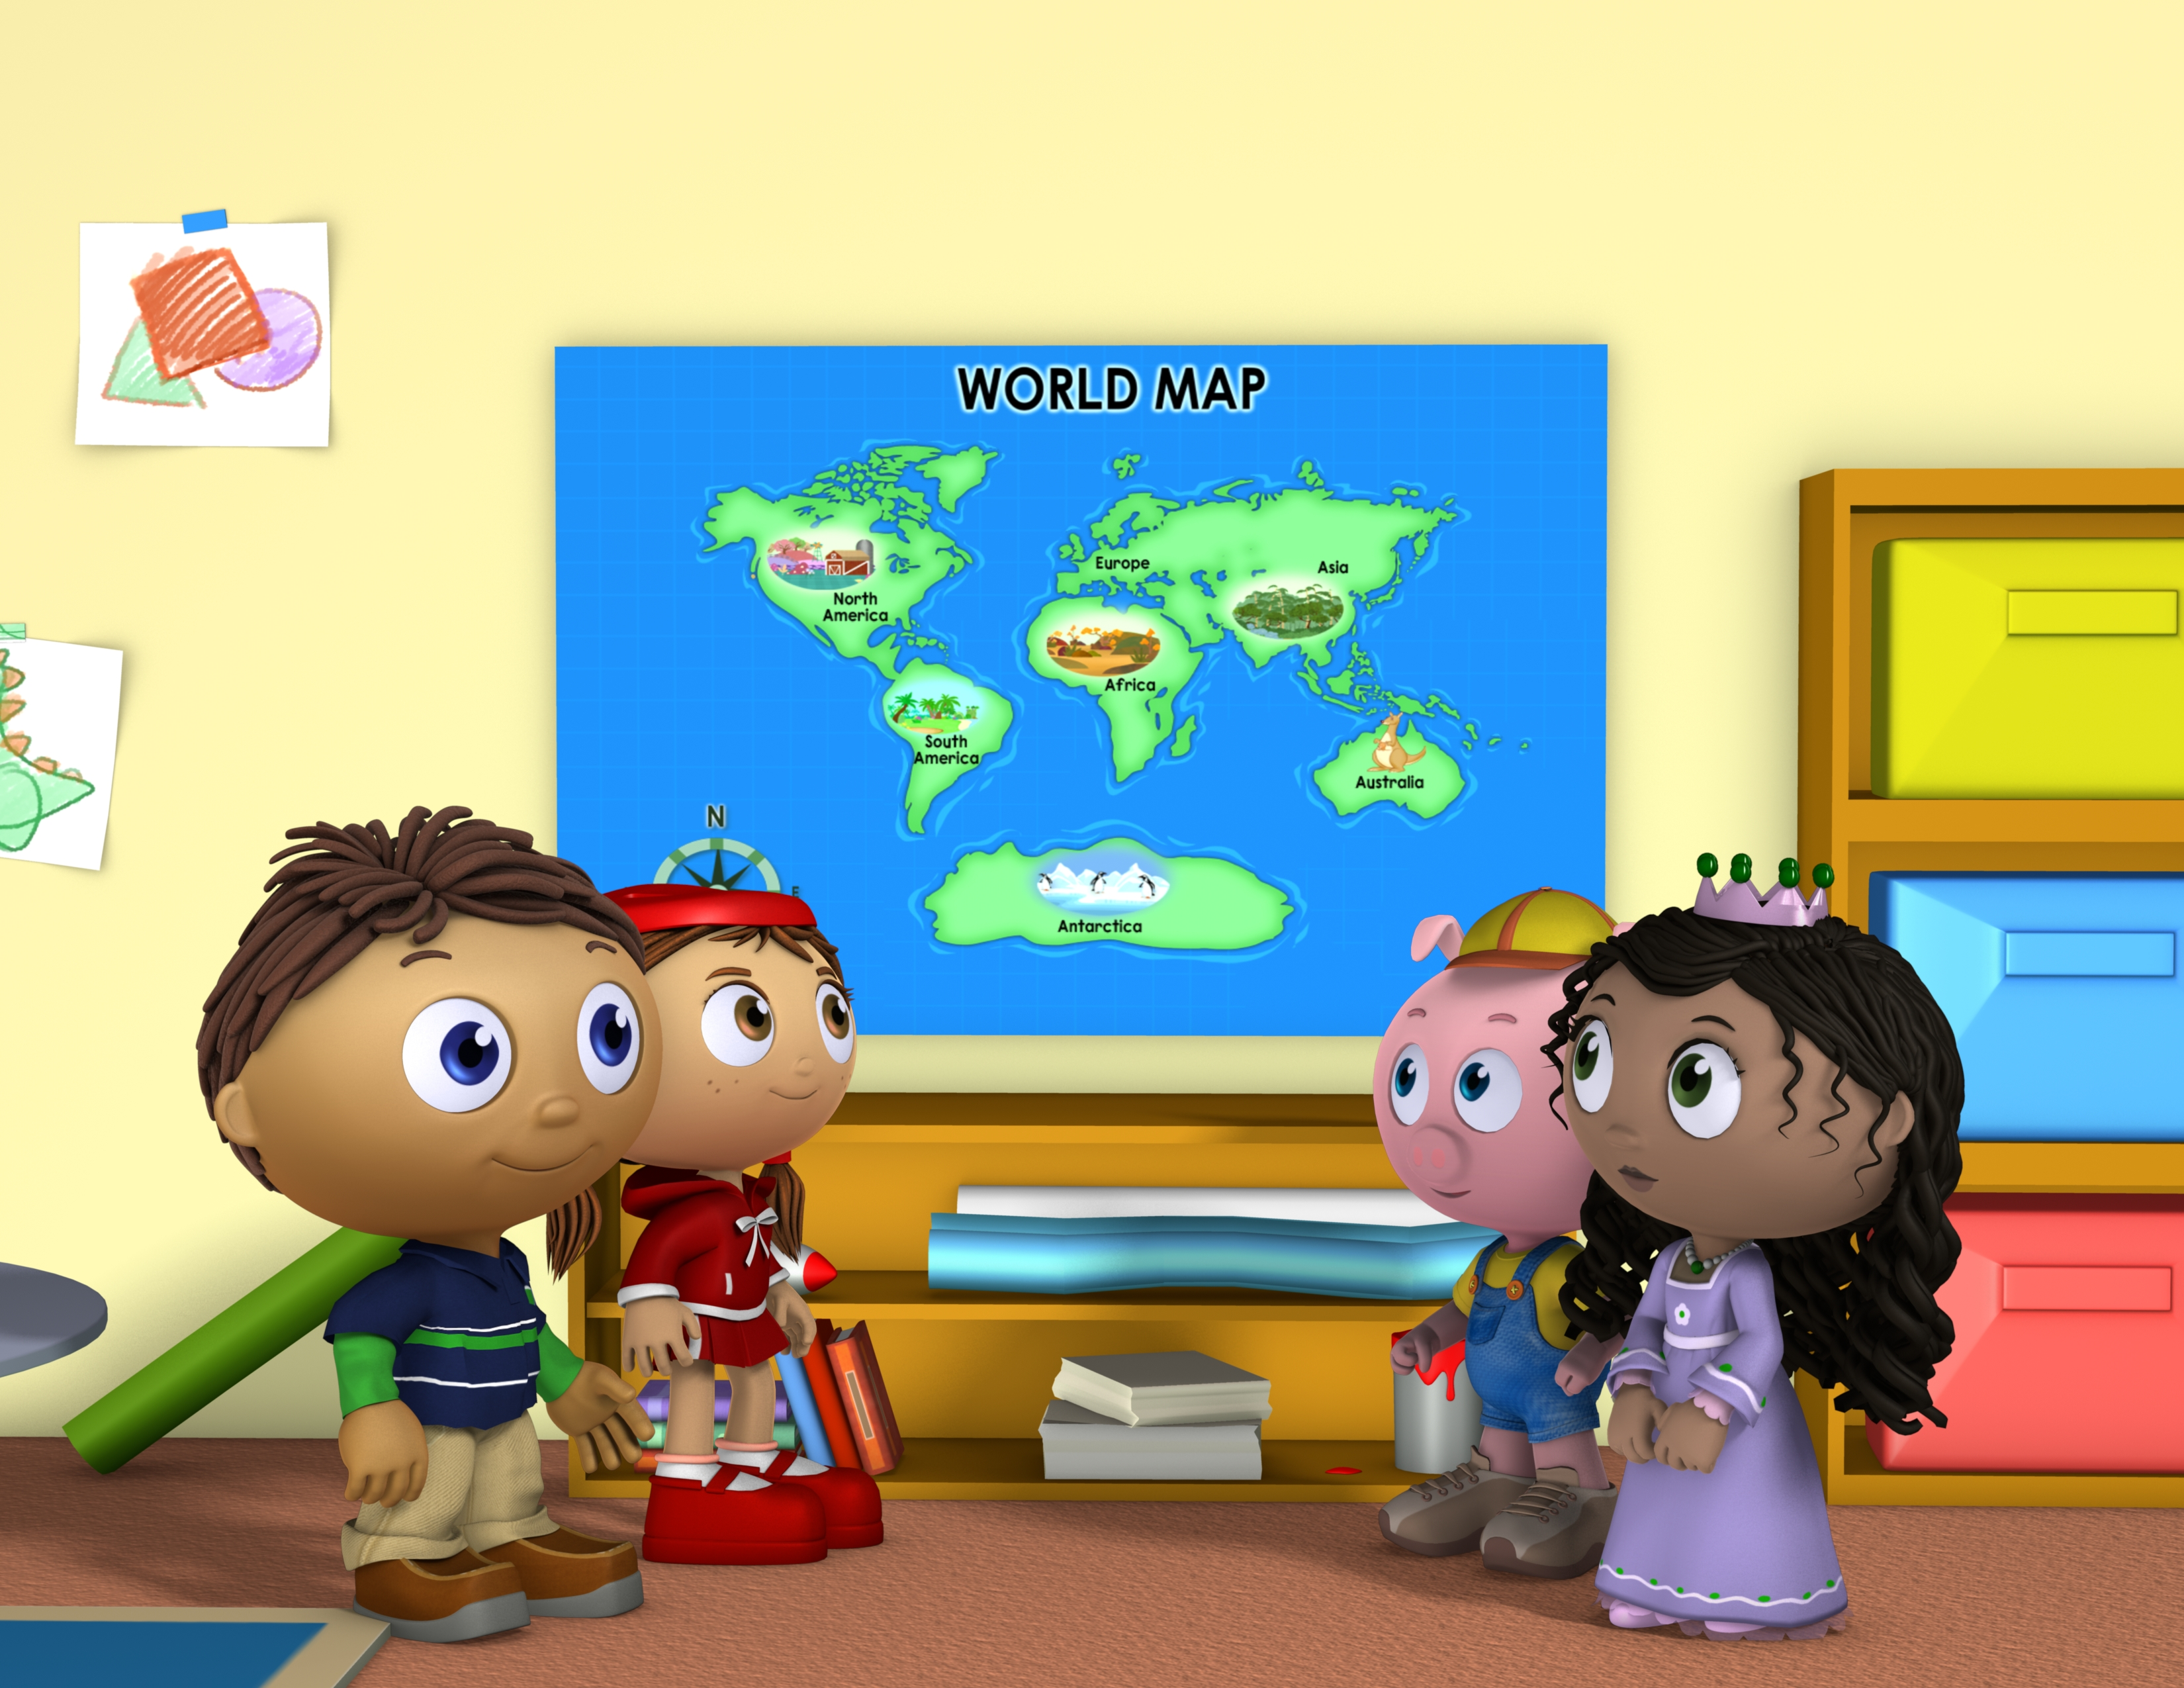 Press Release: PBS KIDS Kicks Off Summer Learning with the SUPER WHY! Around the World Adventure